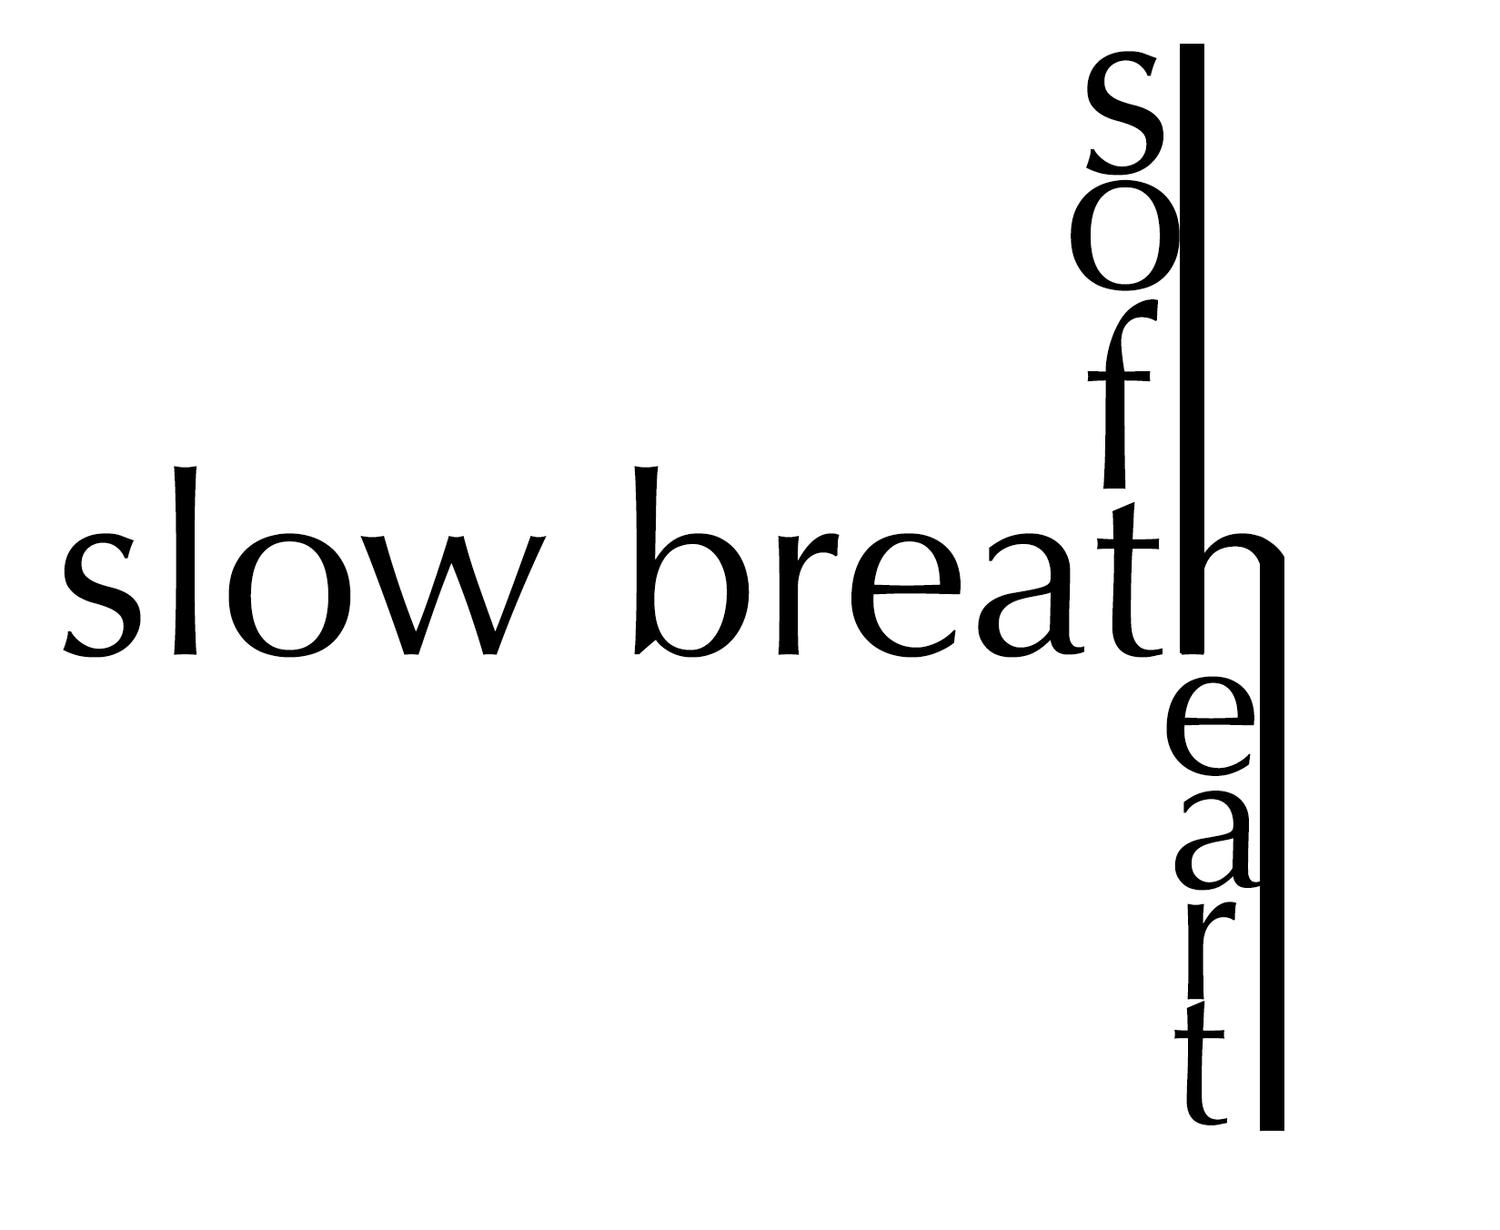 slow breath soft heart